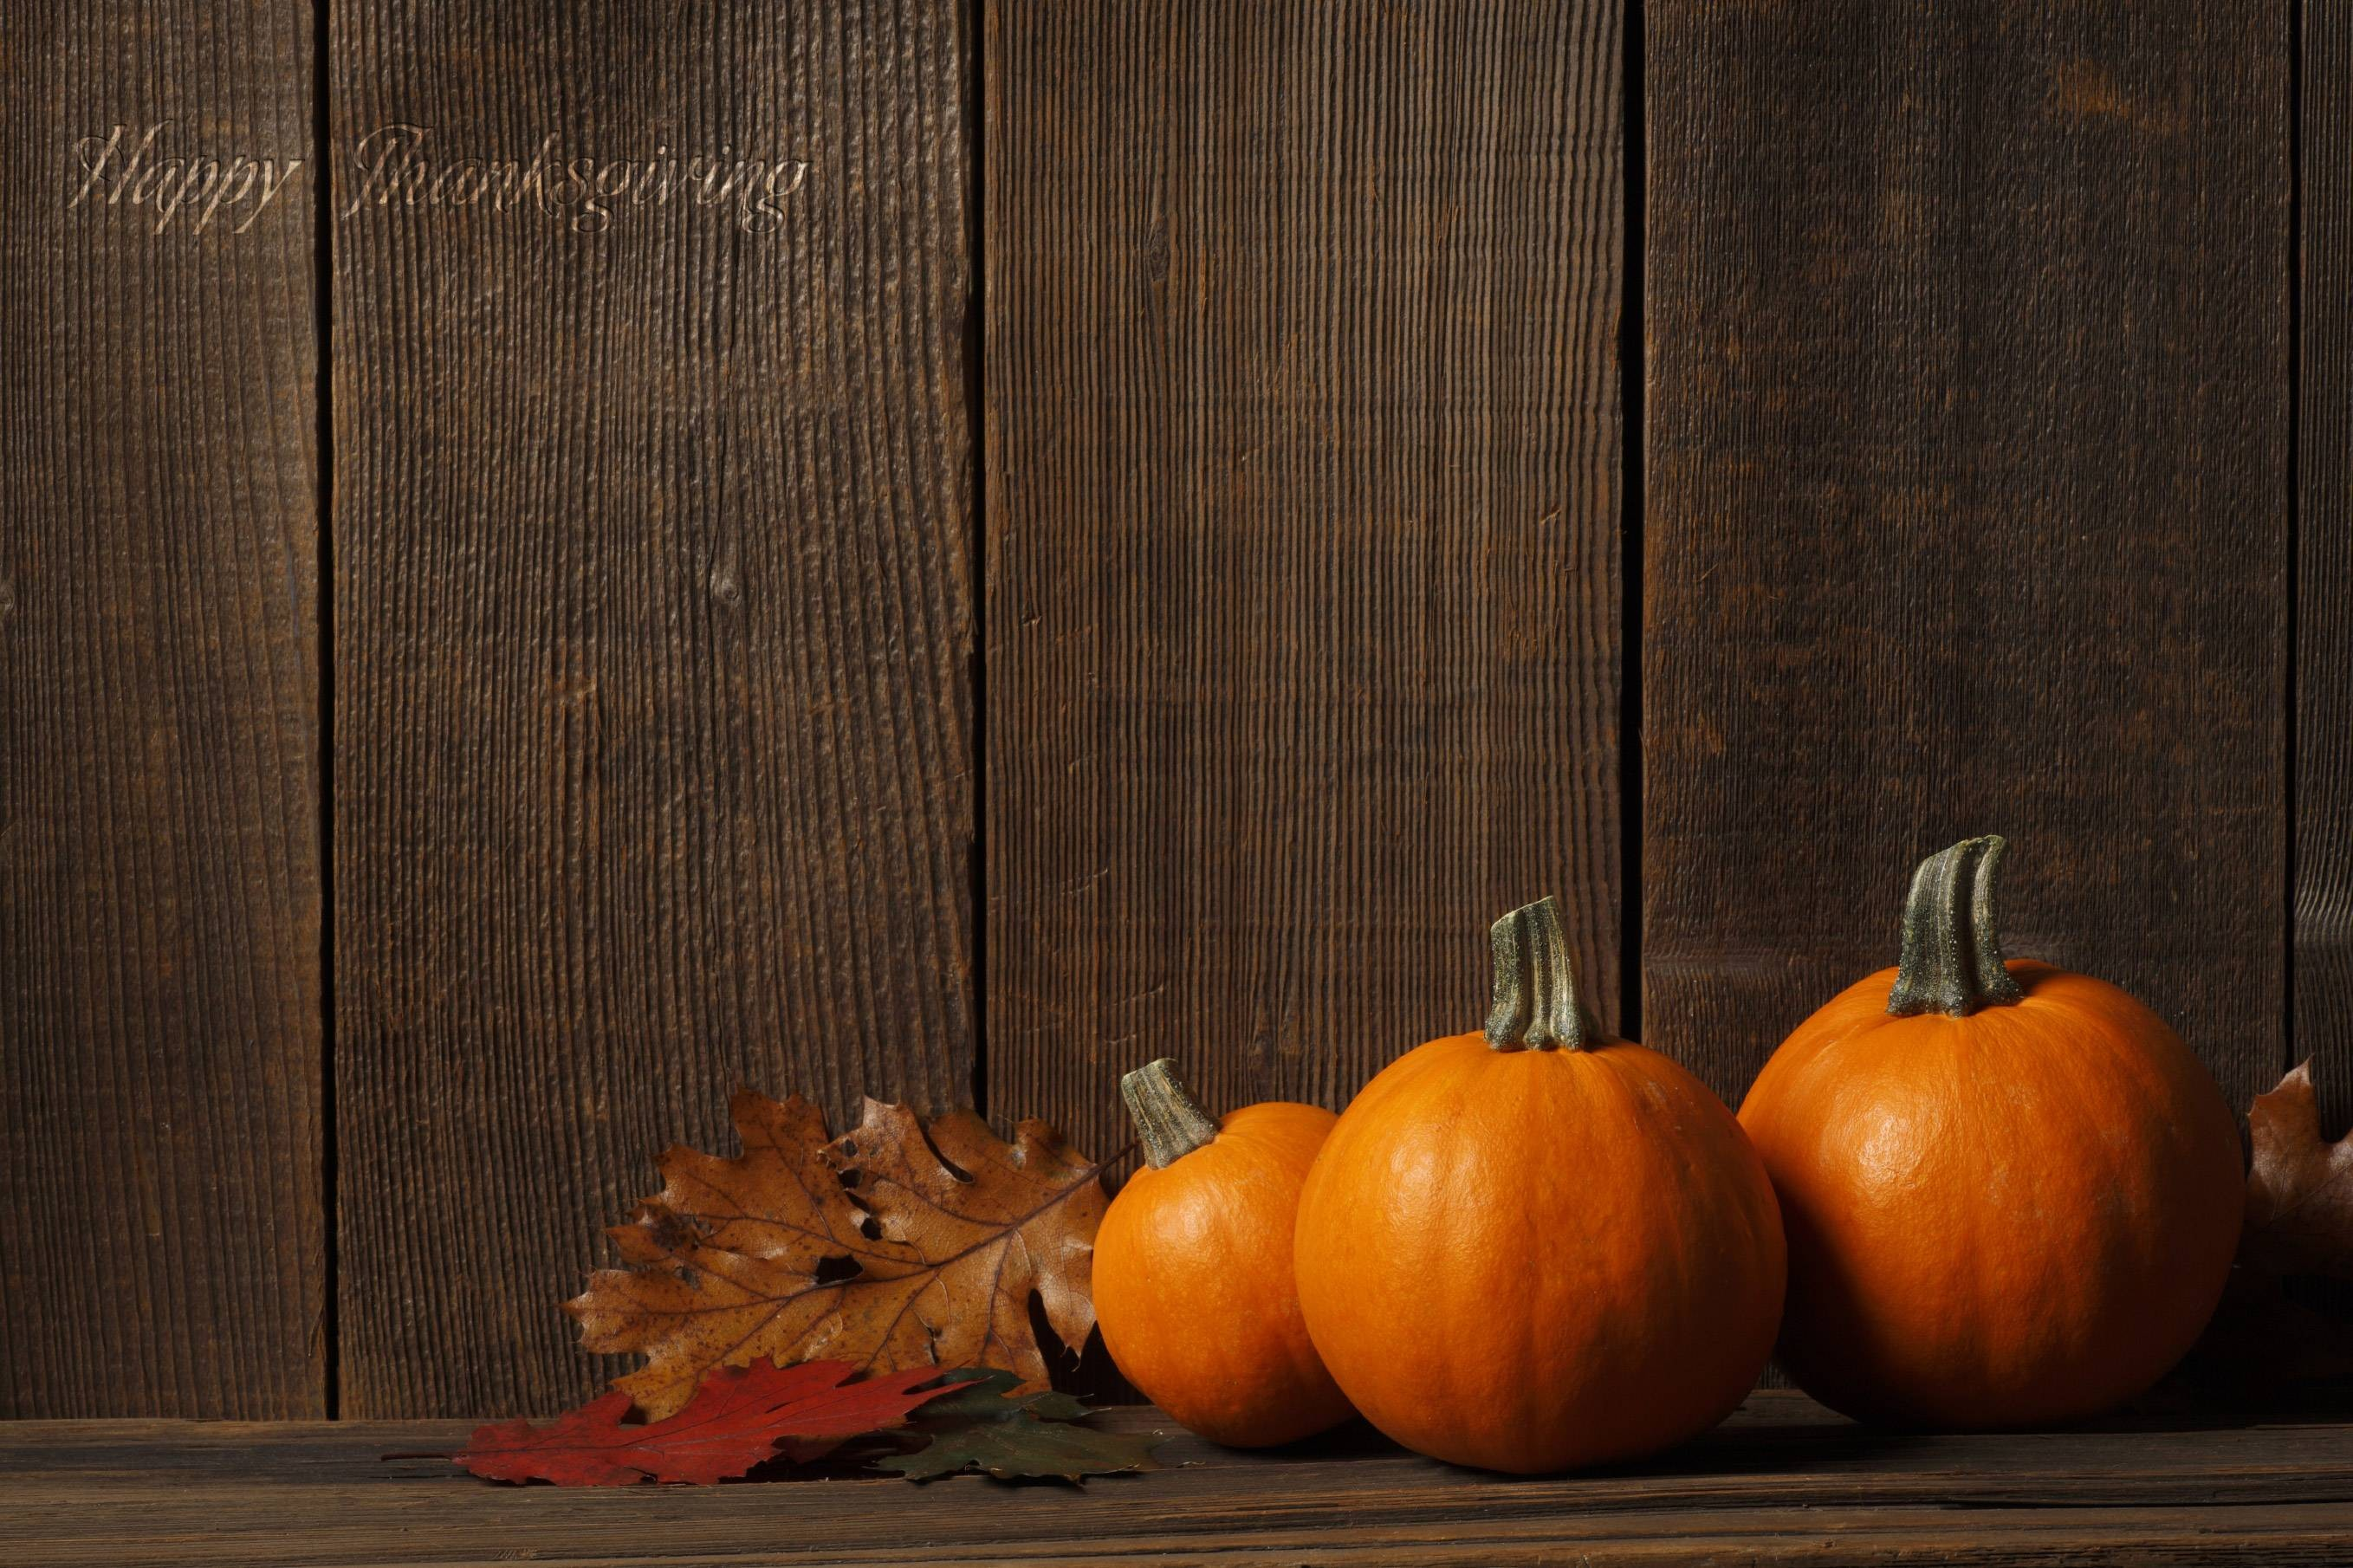 Thanksgiving background images download free cool full hd thanksgiving wallpaper backgrounds hd voltagebd Image collections